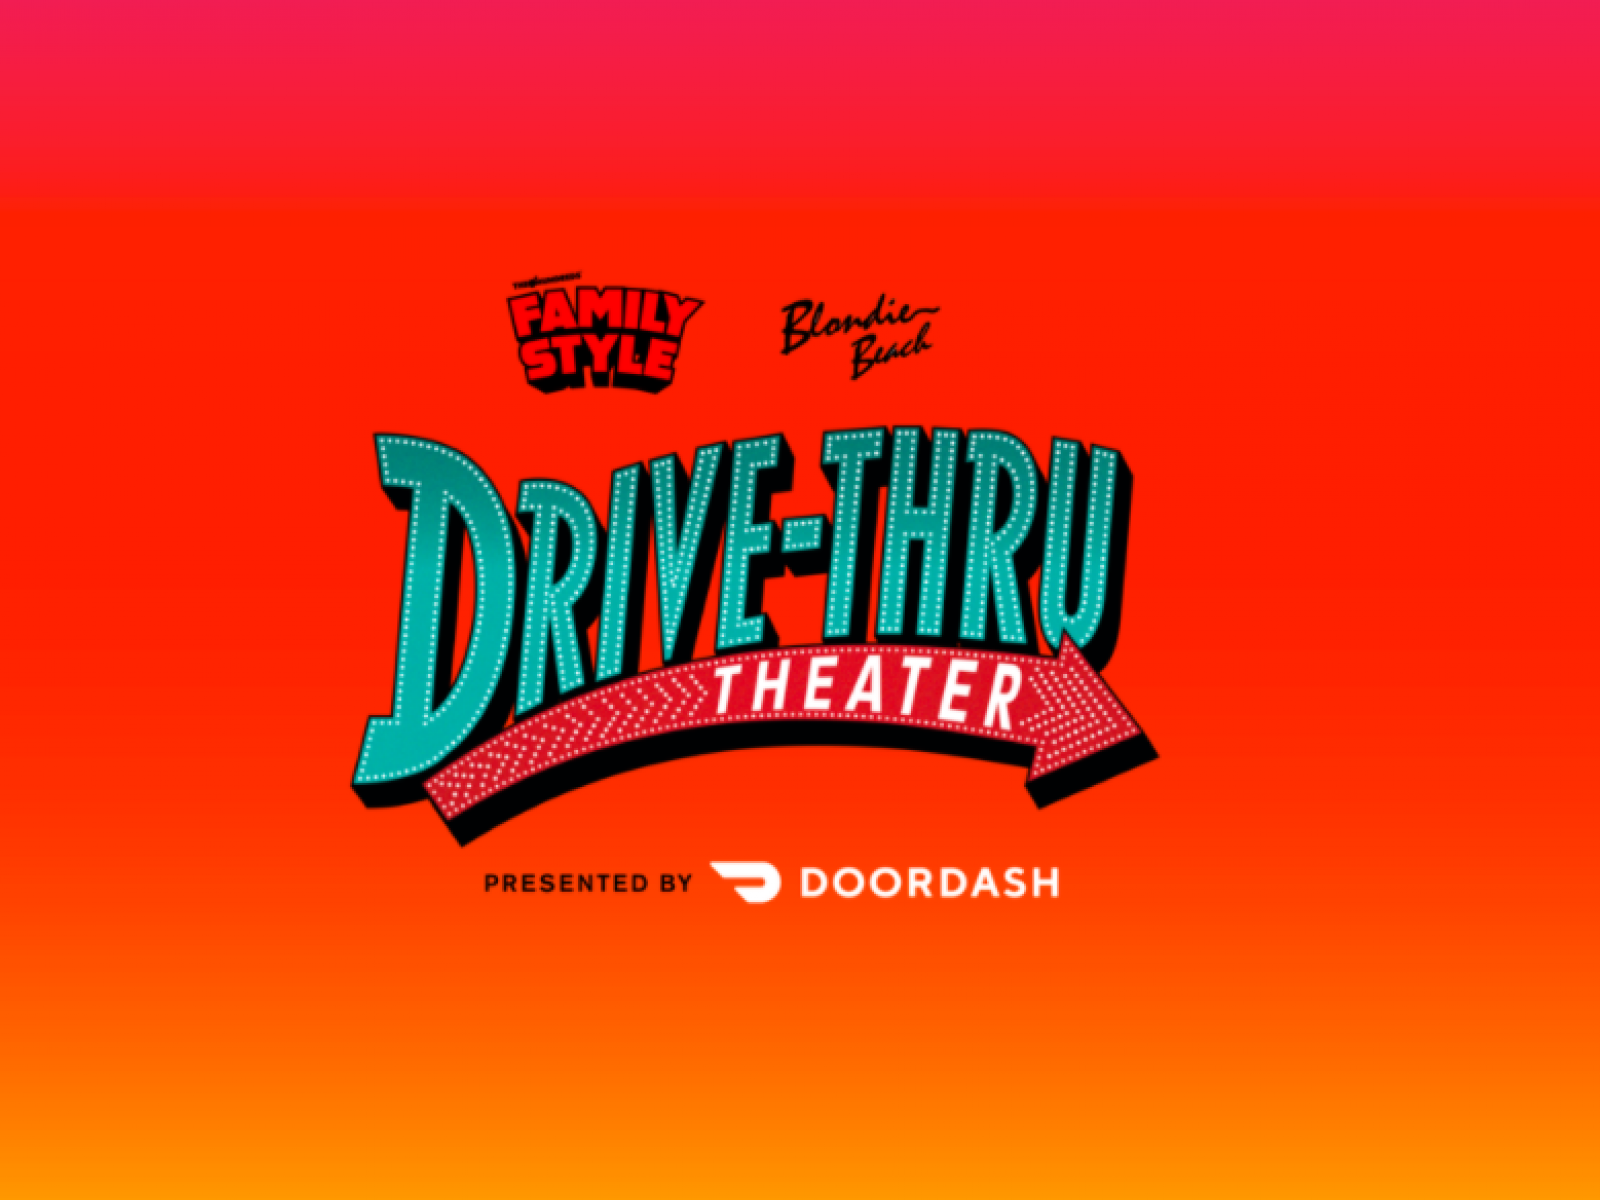 Main image for event titled Family Style Fest & Blondie Beach's Drive-Thru Theater Presented by DoorDash (OPENING NIGHT)